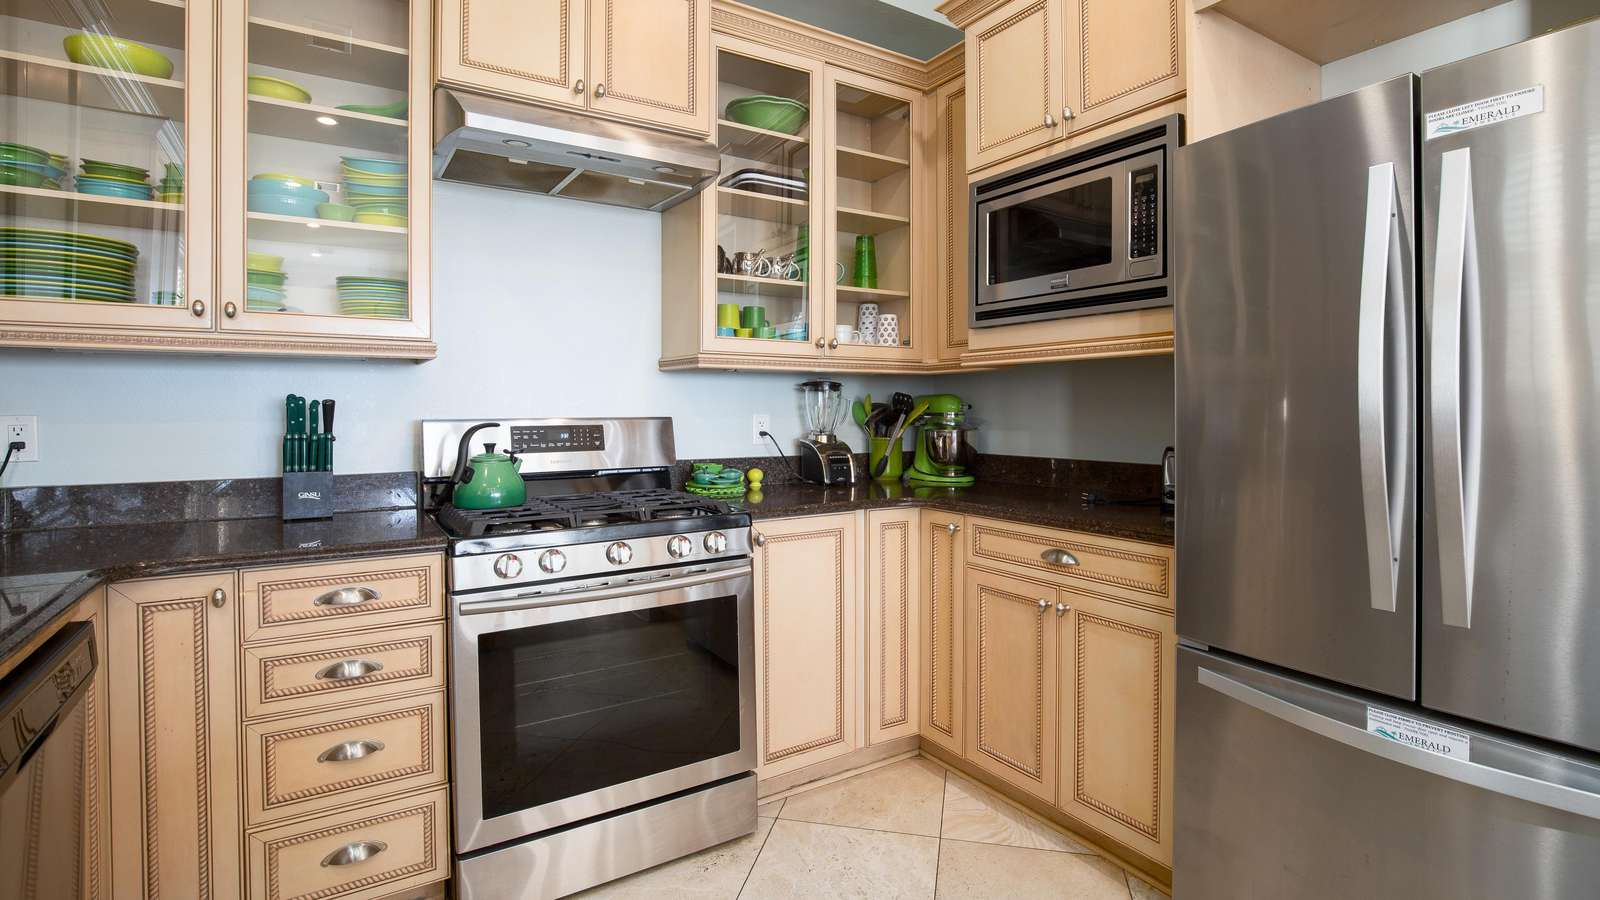 The kitchen is stocked with all you need and more!